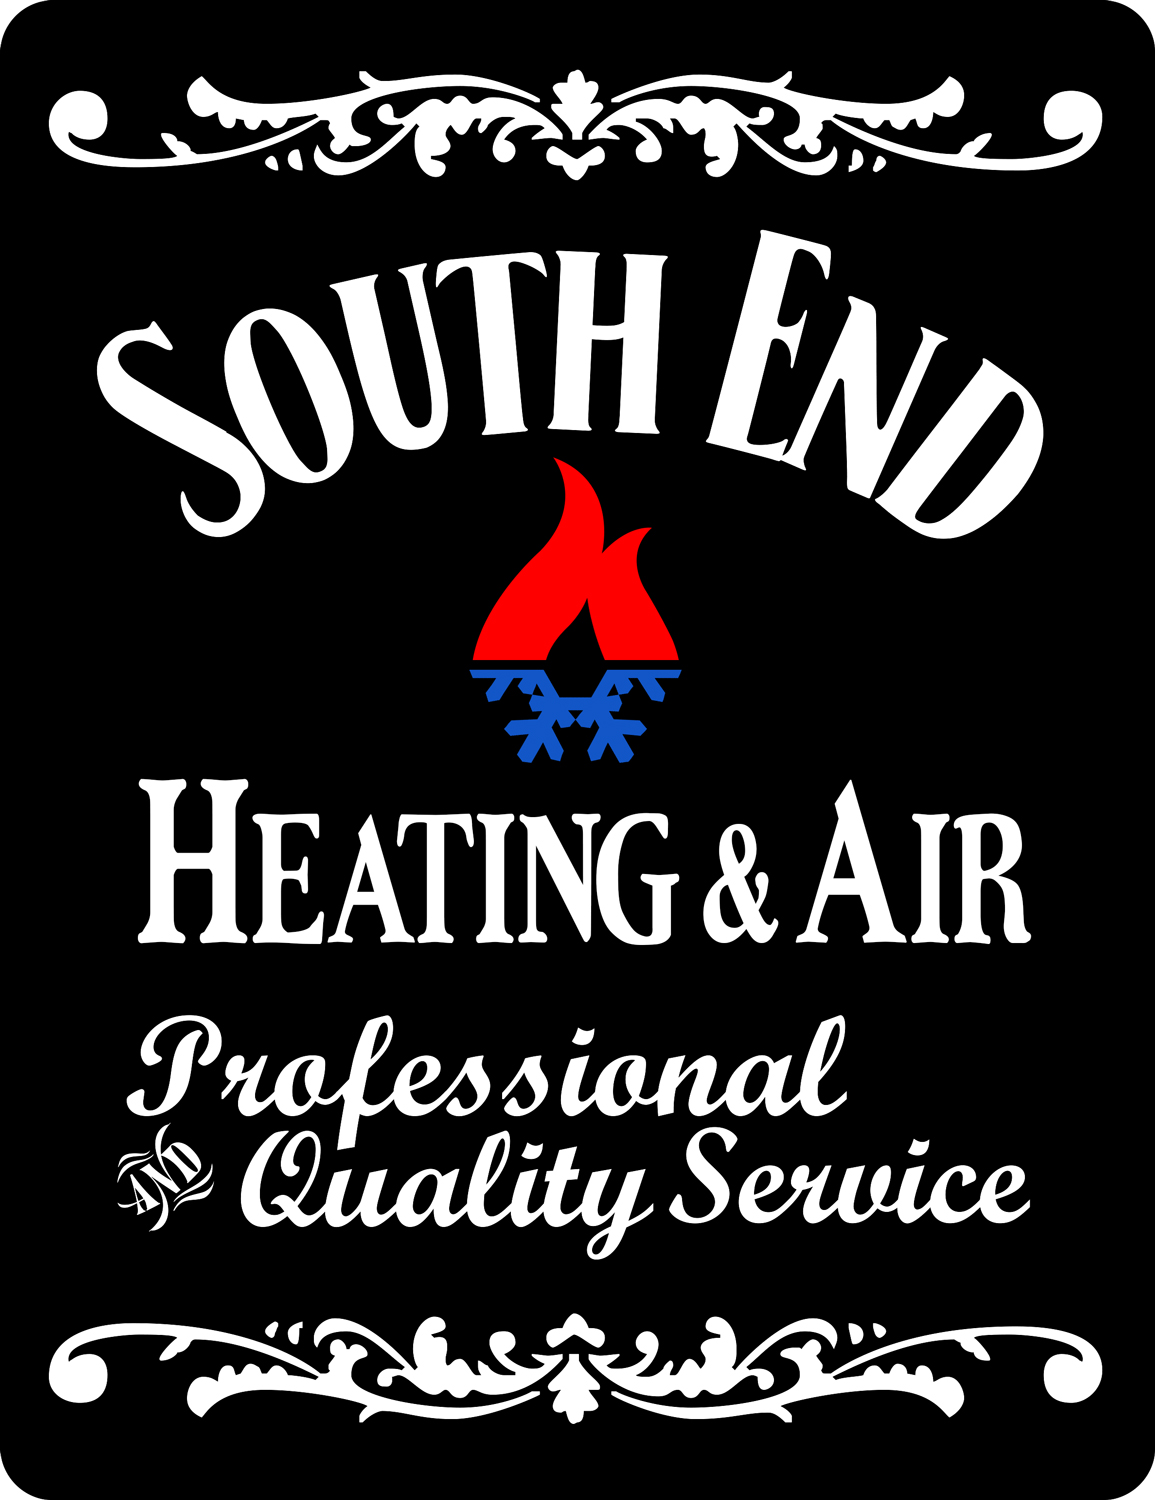 South End Heating & Air